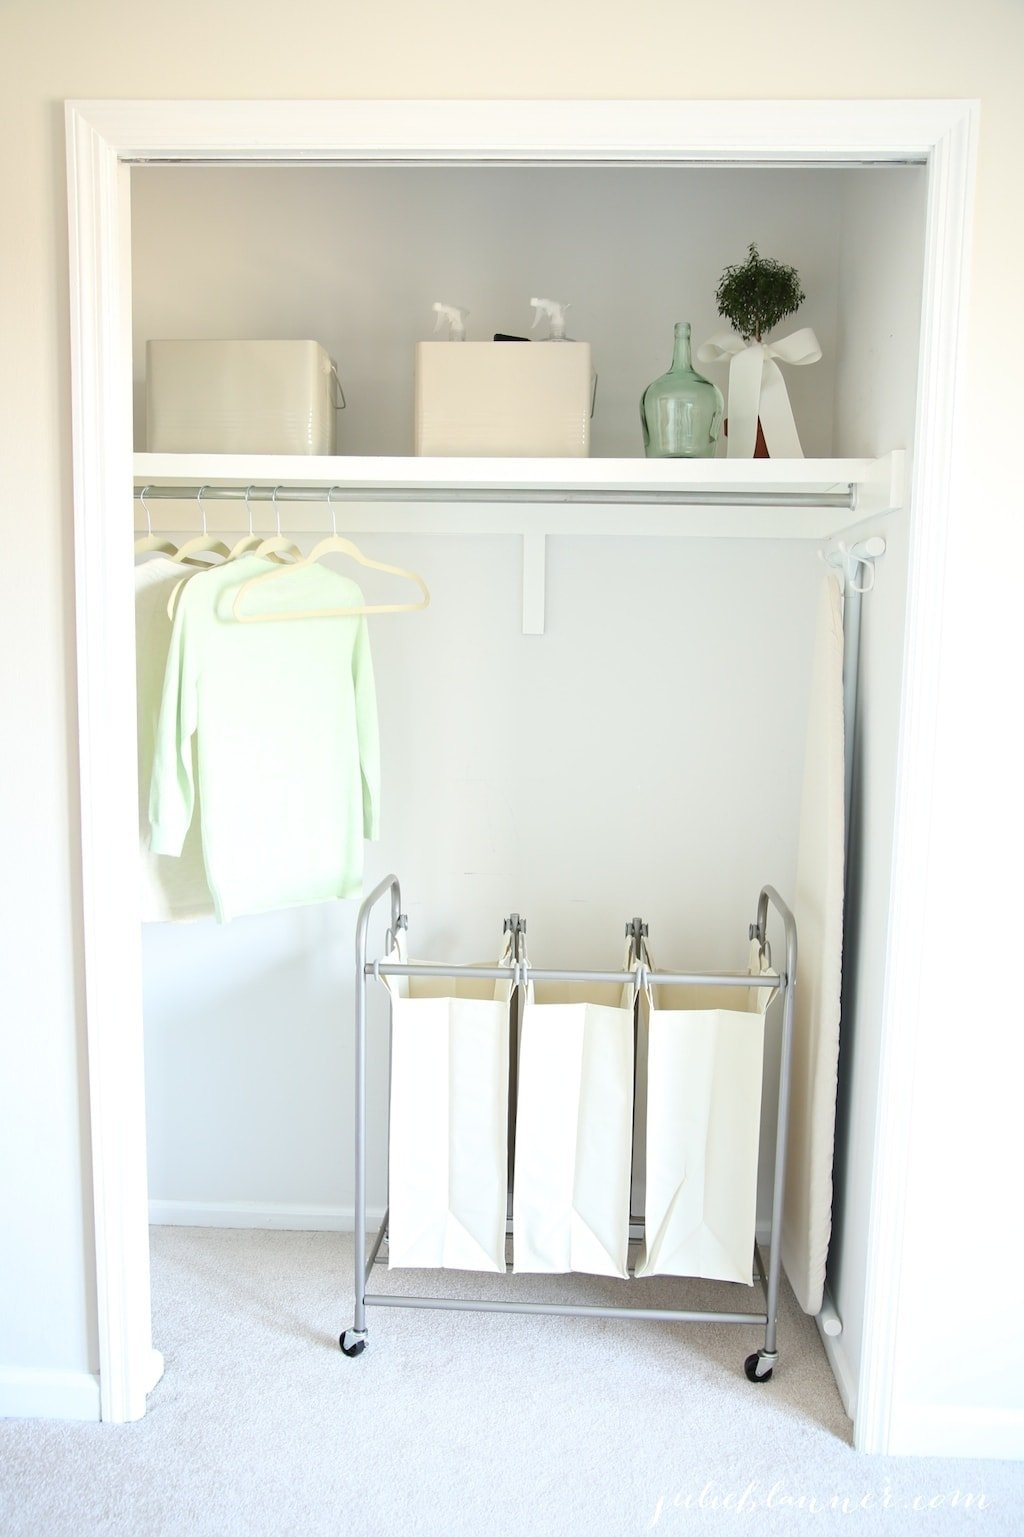 Easy ideas to organize your laundry room, making it a beautiful & functional space!